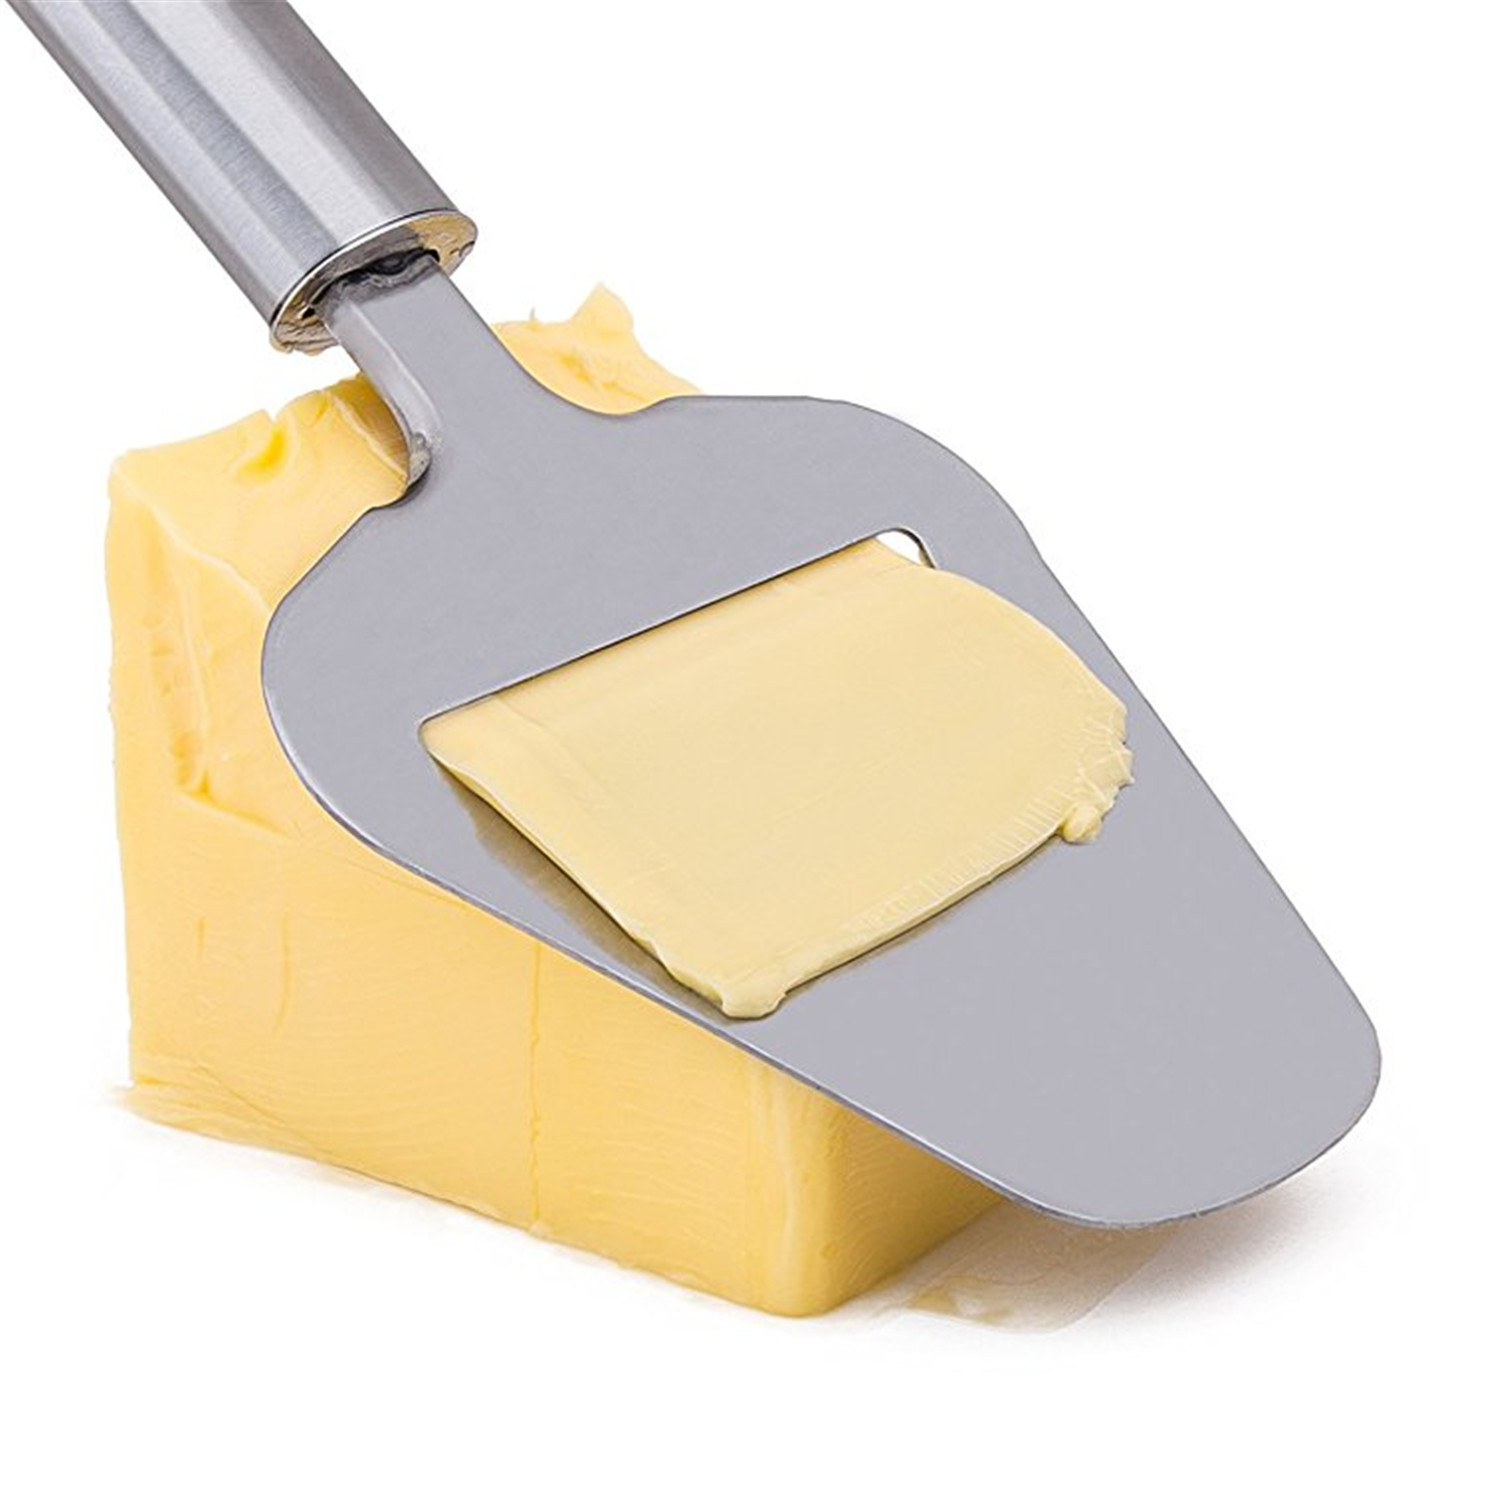 Lunaya Cheese Slicer For Hard Cheese High Grade Stainless Steel Plane Cutter Slices Knives Kitchen Gadget Tool Mother Gift